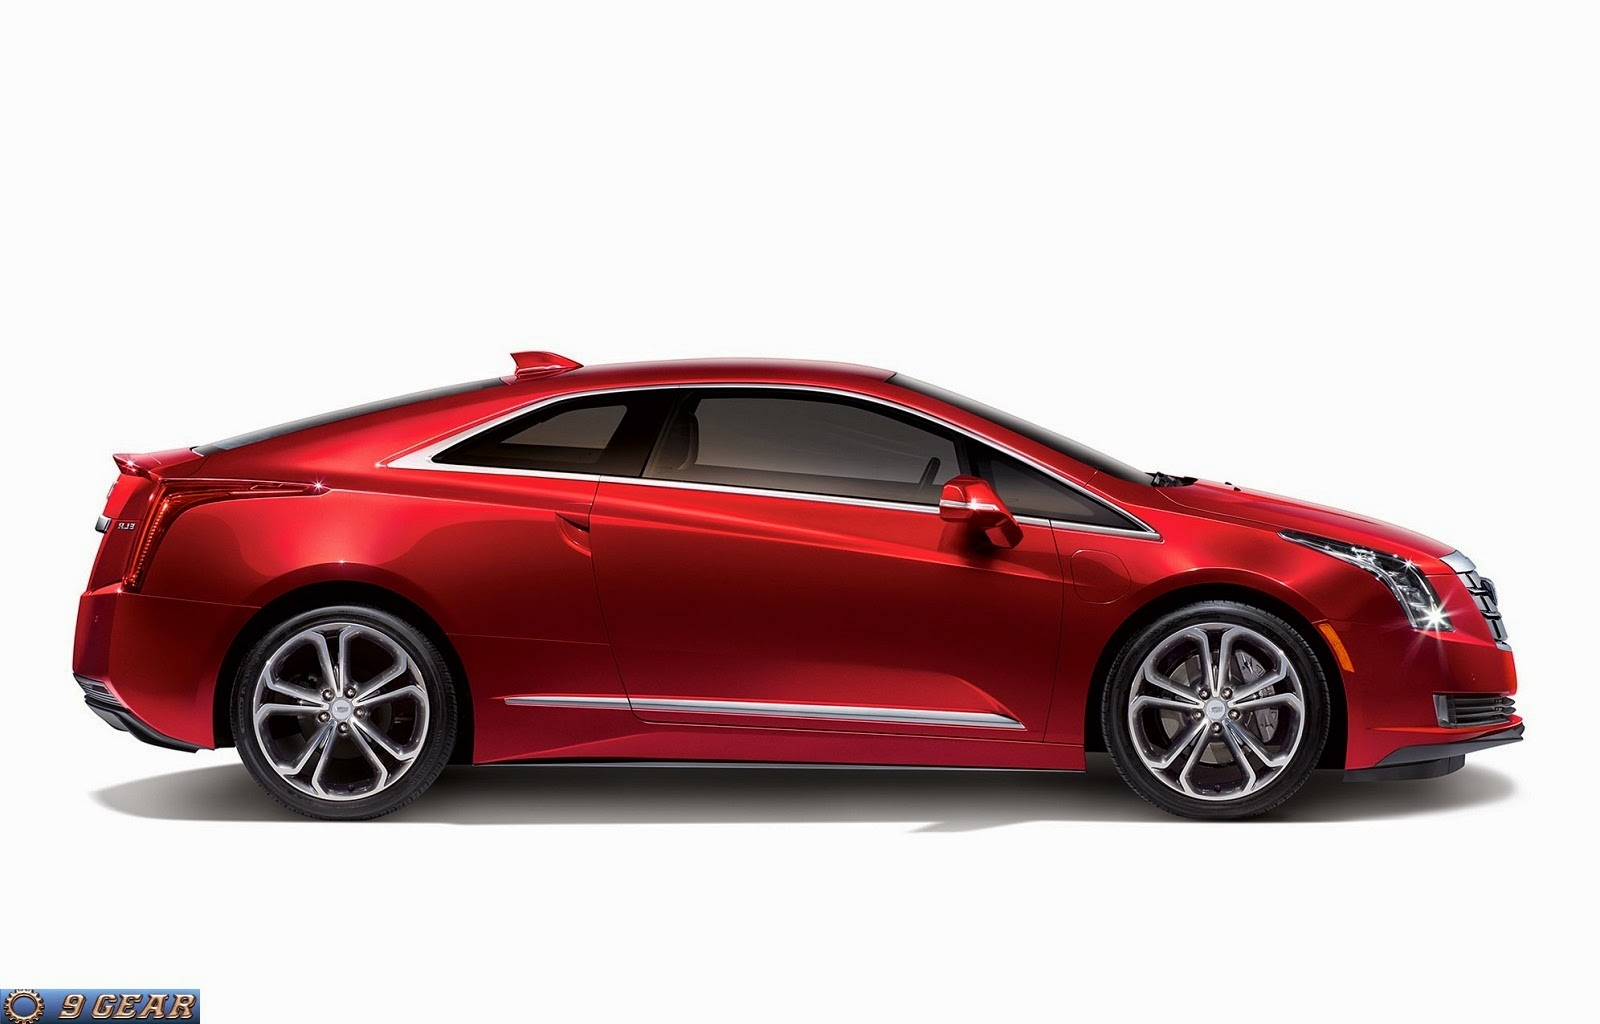 Car Reviews | New Car Images | Pictures, News: 2016 Cadillac ELR: More ...